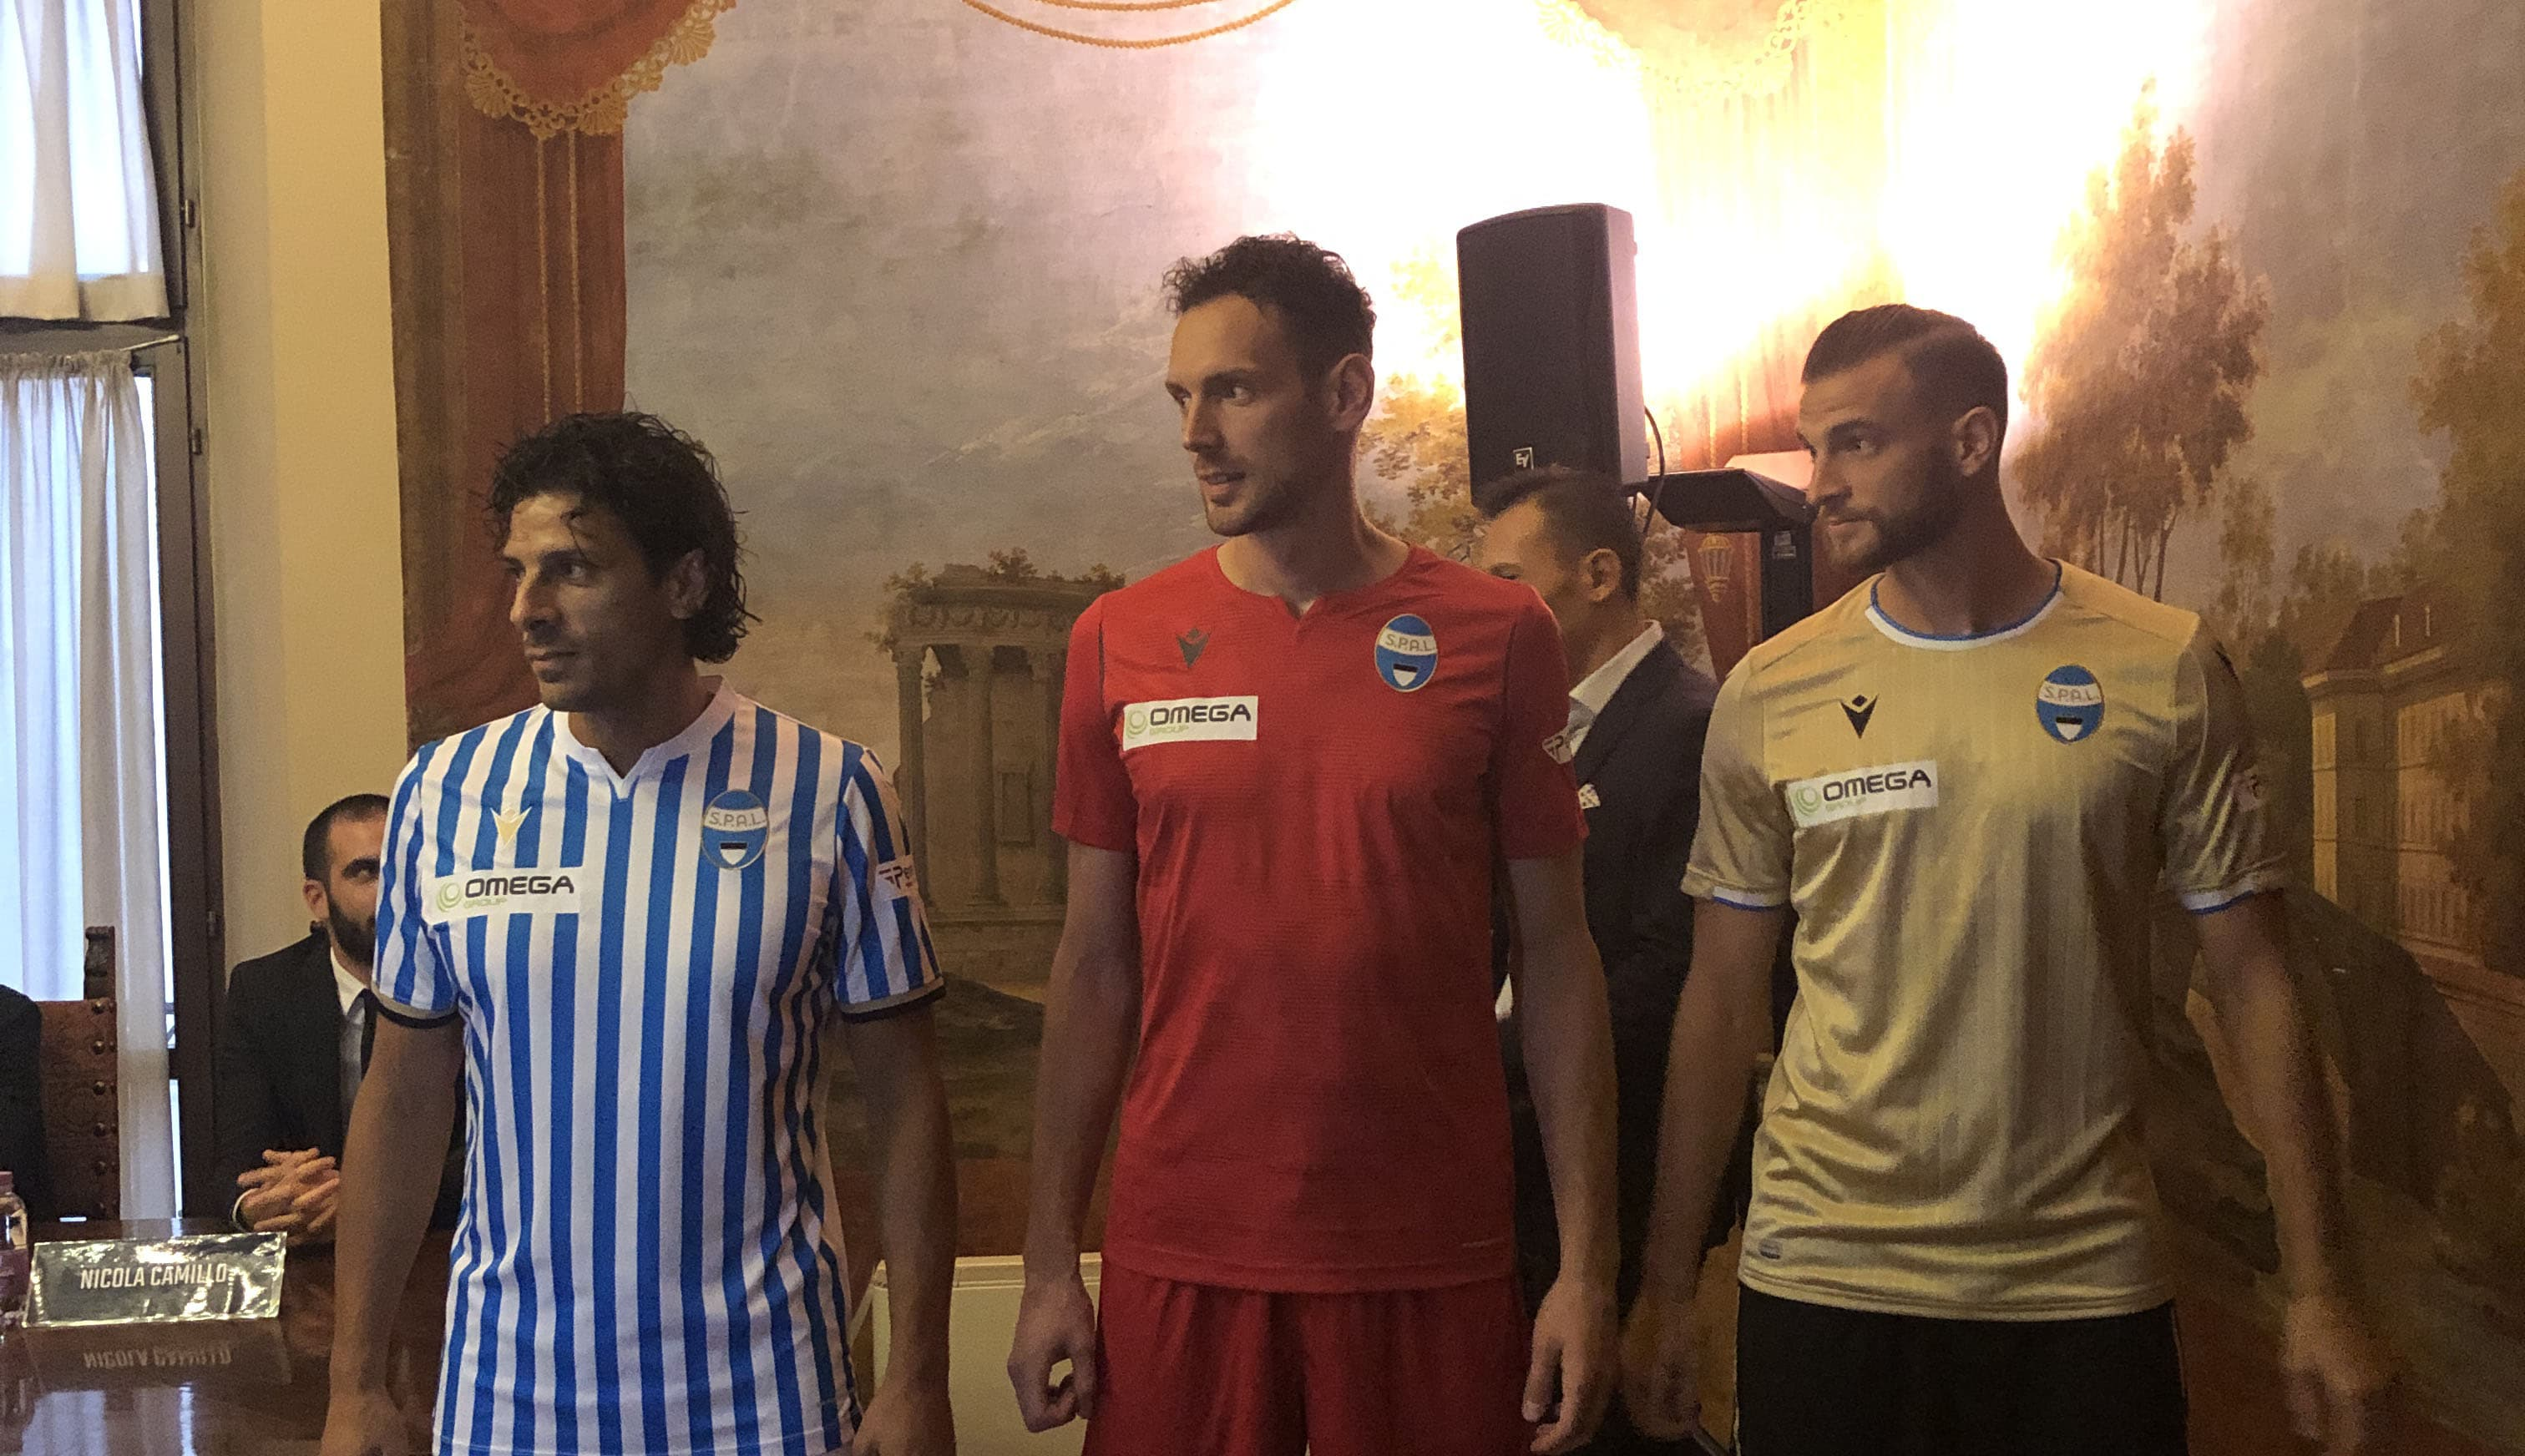 Omega Group Main Sponsor Spal Ferrara